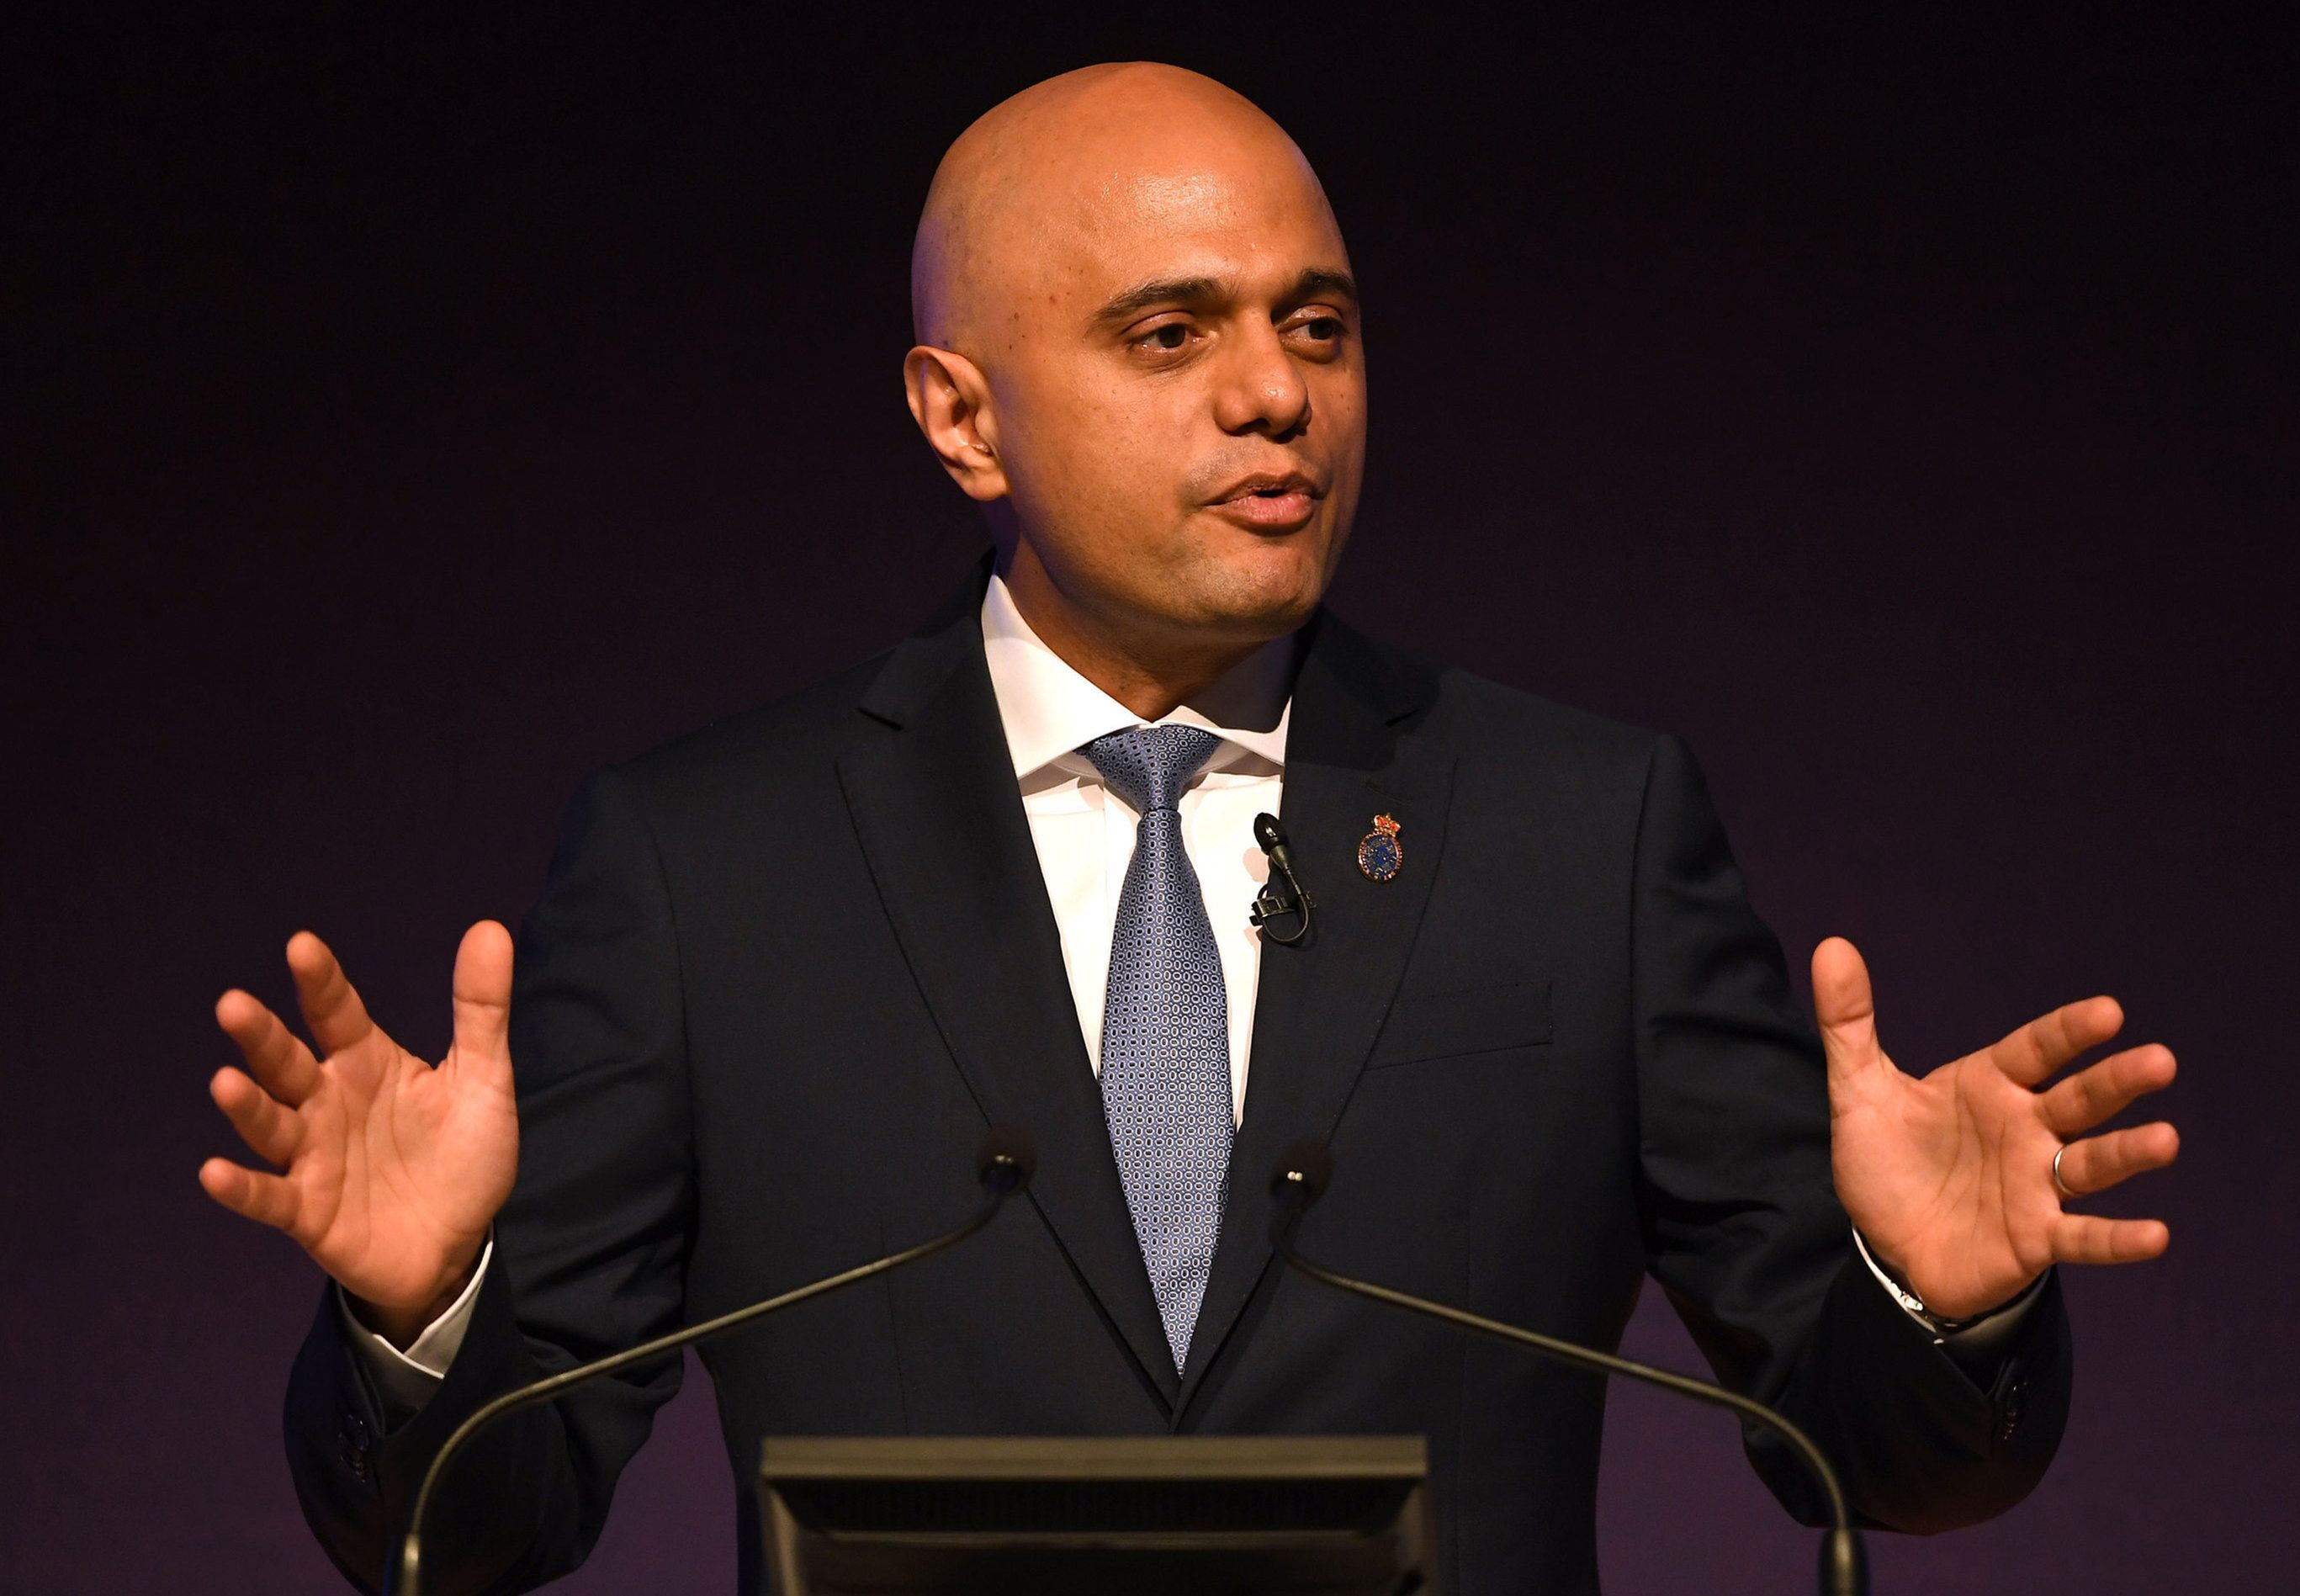 Medical Cannabis Could Be Legalised, Sajid Javid Announces